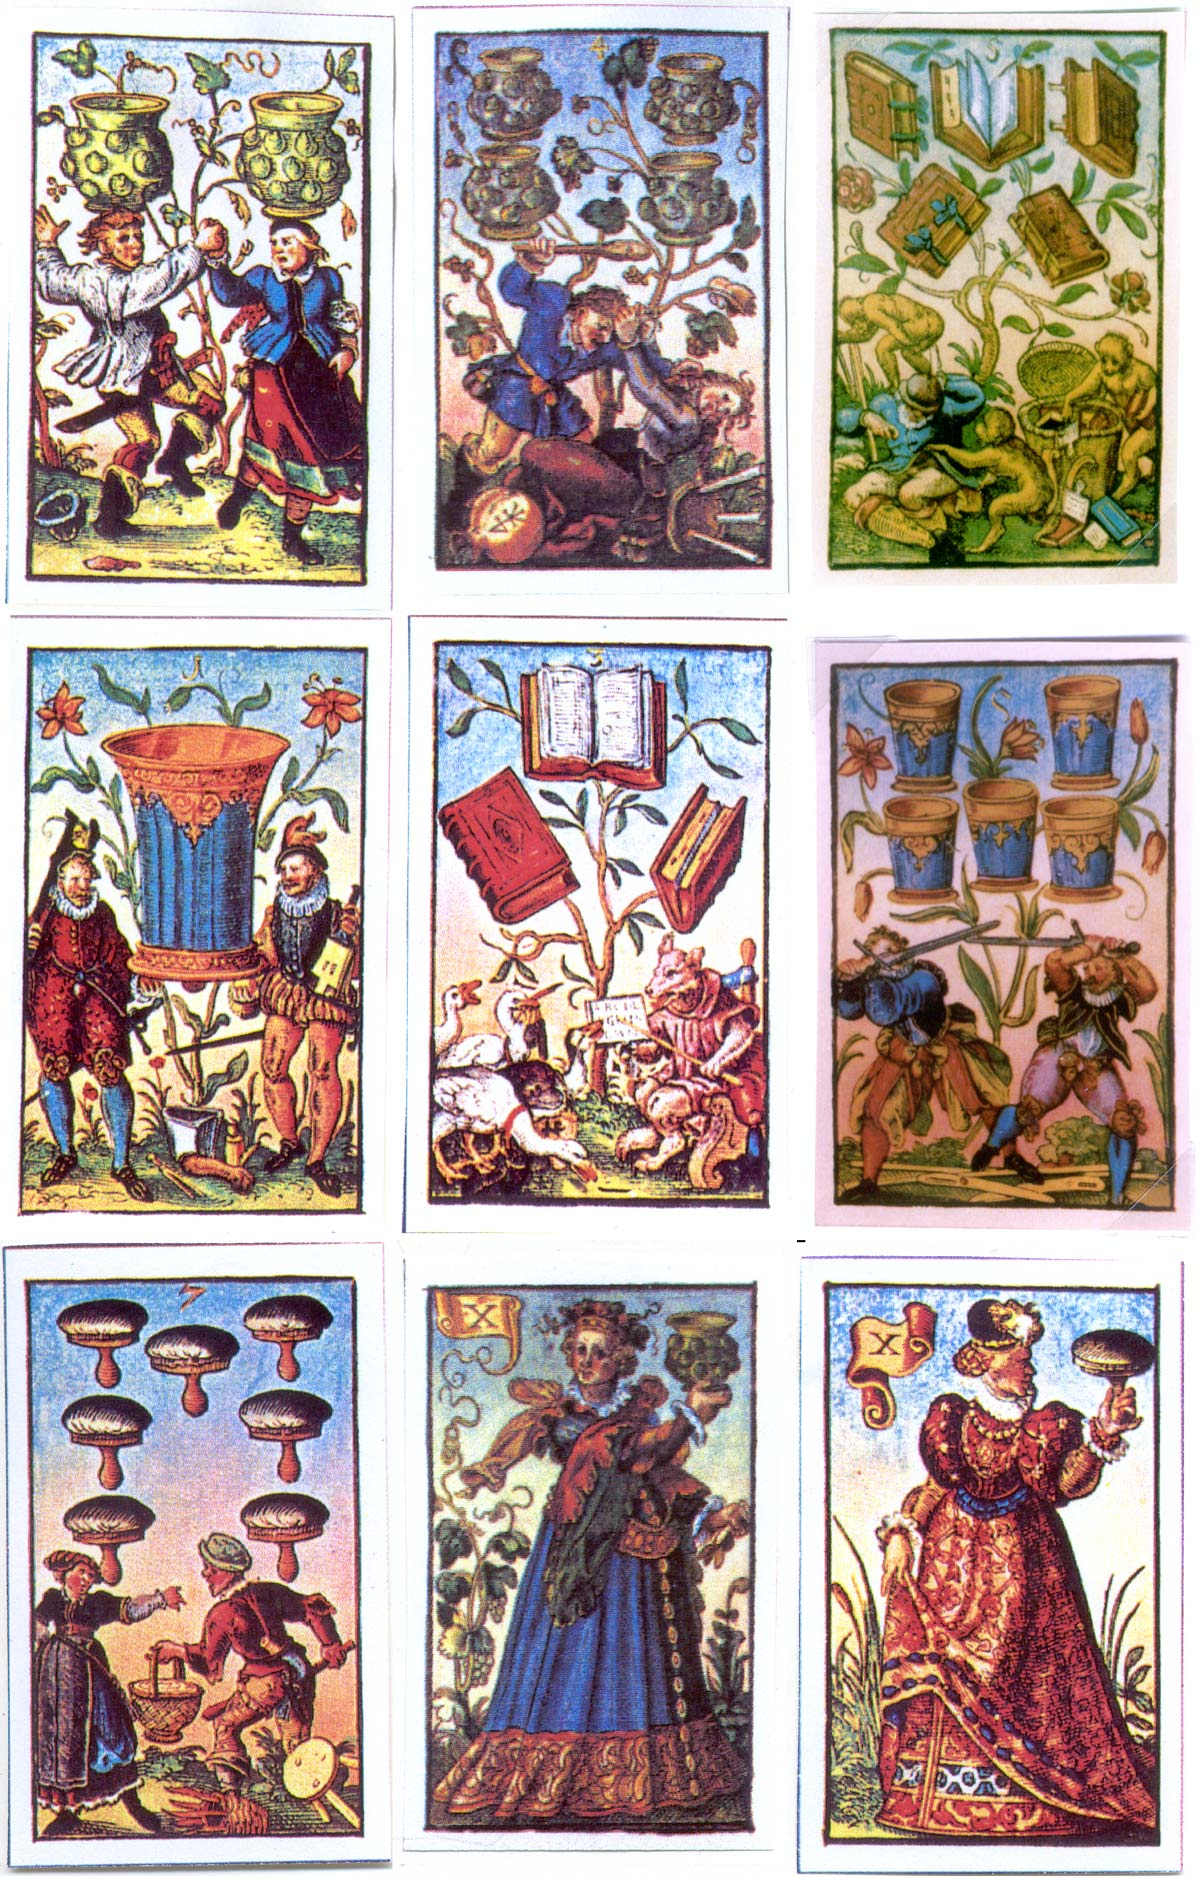 cards from the Book of Trades by the prolific German Renaissance artist Jost Amman (1539-91)